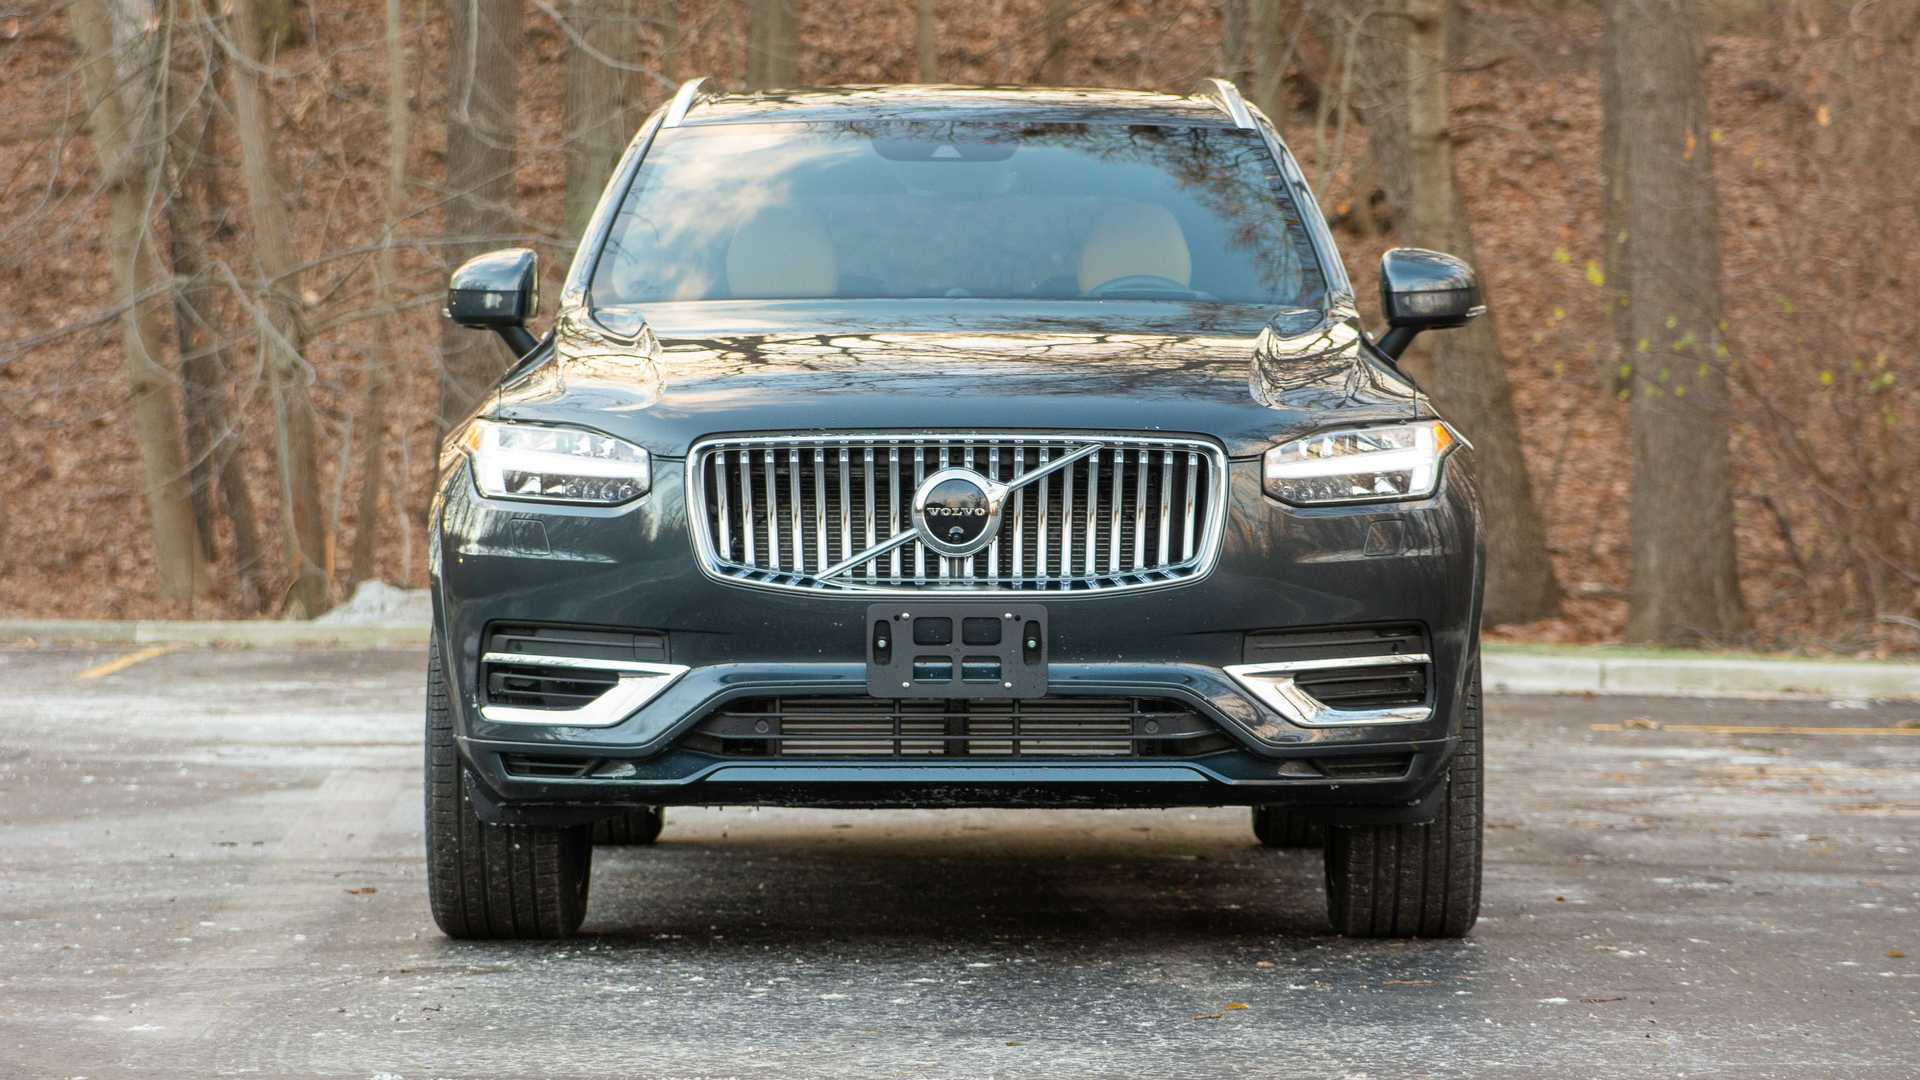 2021 Volvo Xc90 Recharge Review More Tired Than Wired